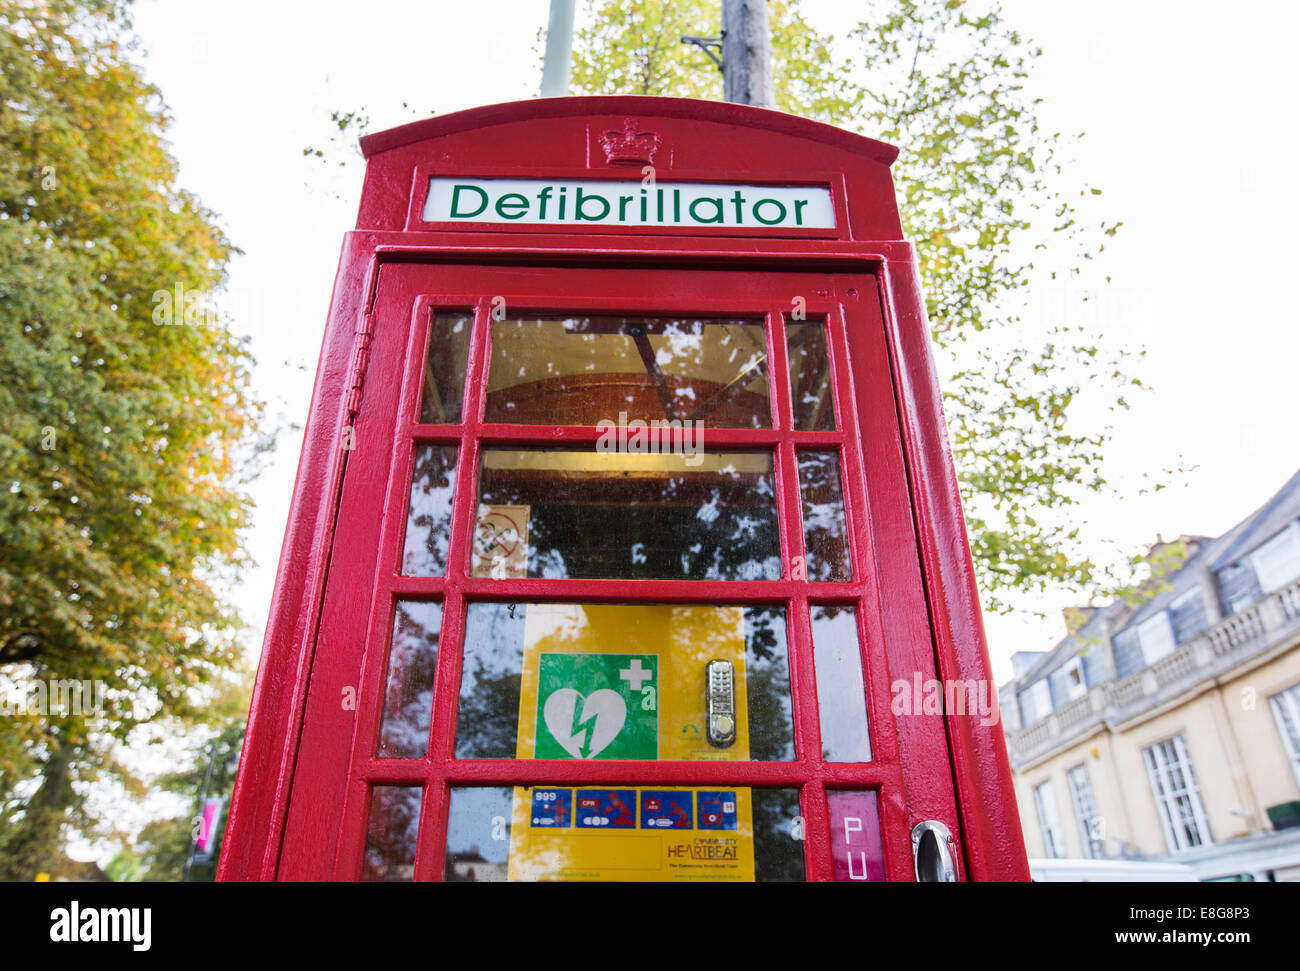 A telephone box in Cheltenham, UK, which now contains a defibrillator instead of a telephone - Stock Image